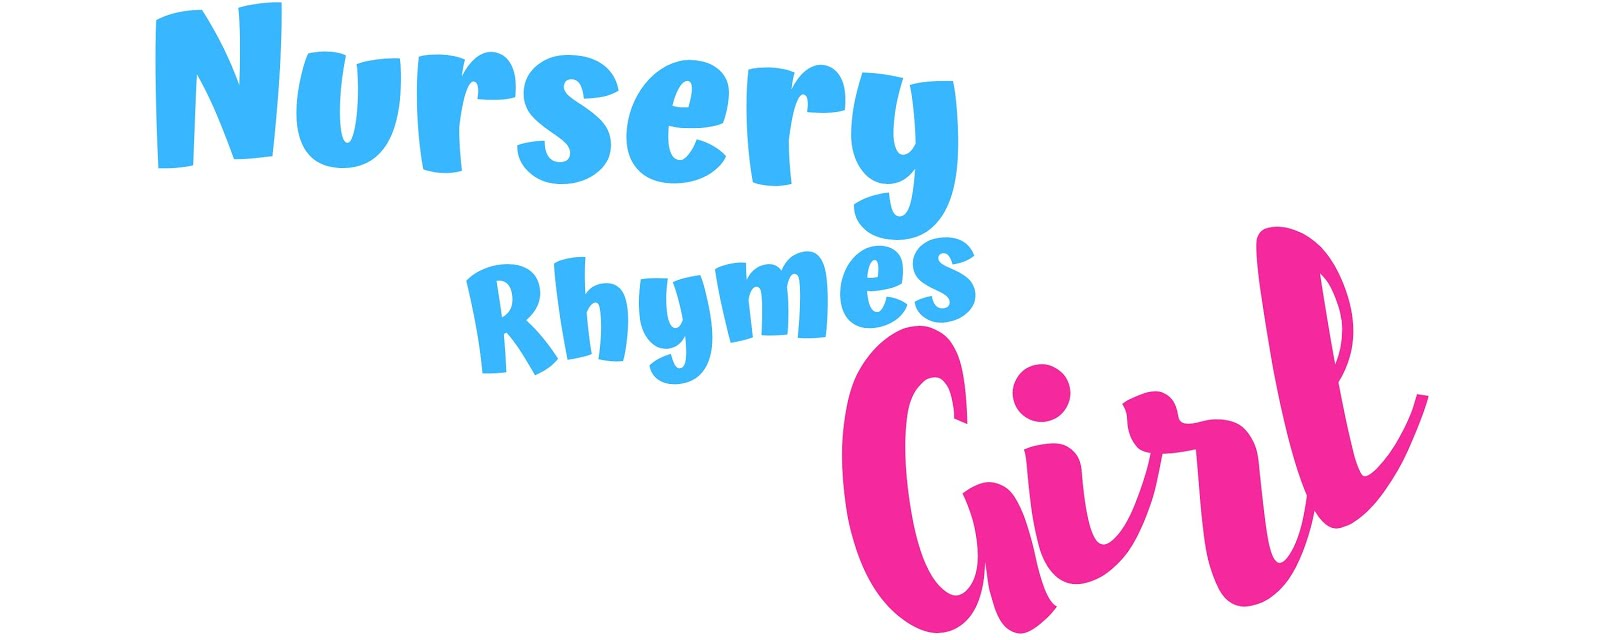 Buy Nursery Rhymes and Children's Songs to Monetize on YouTube.